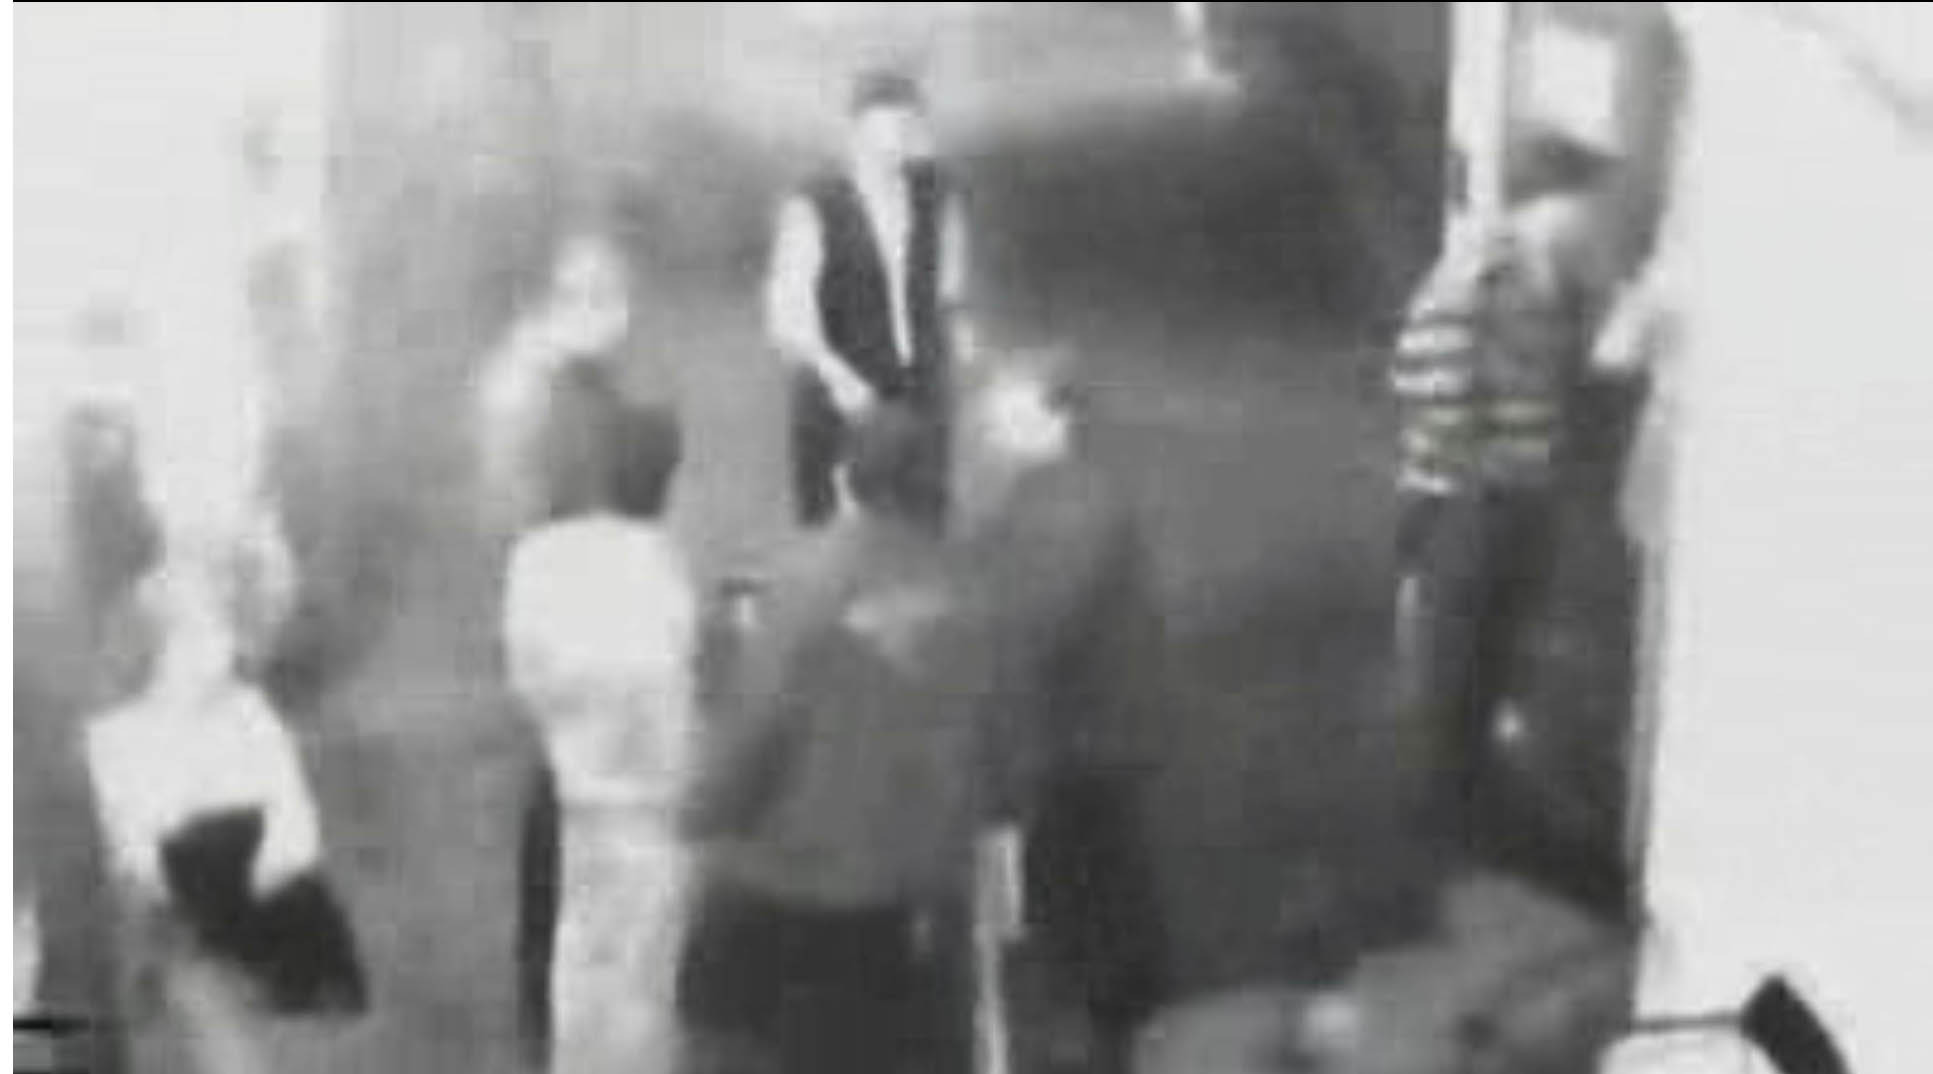 The CCTV shows Ms Rimmer's possible final movements before she was abducted. (WA Police)